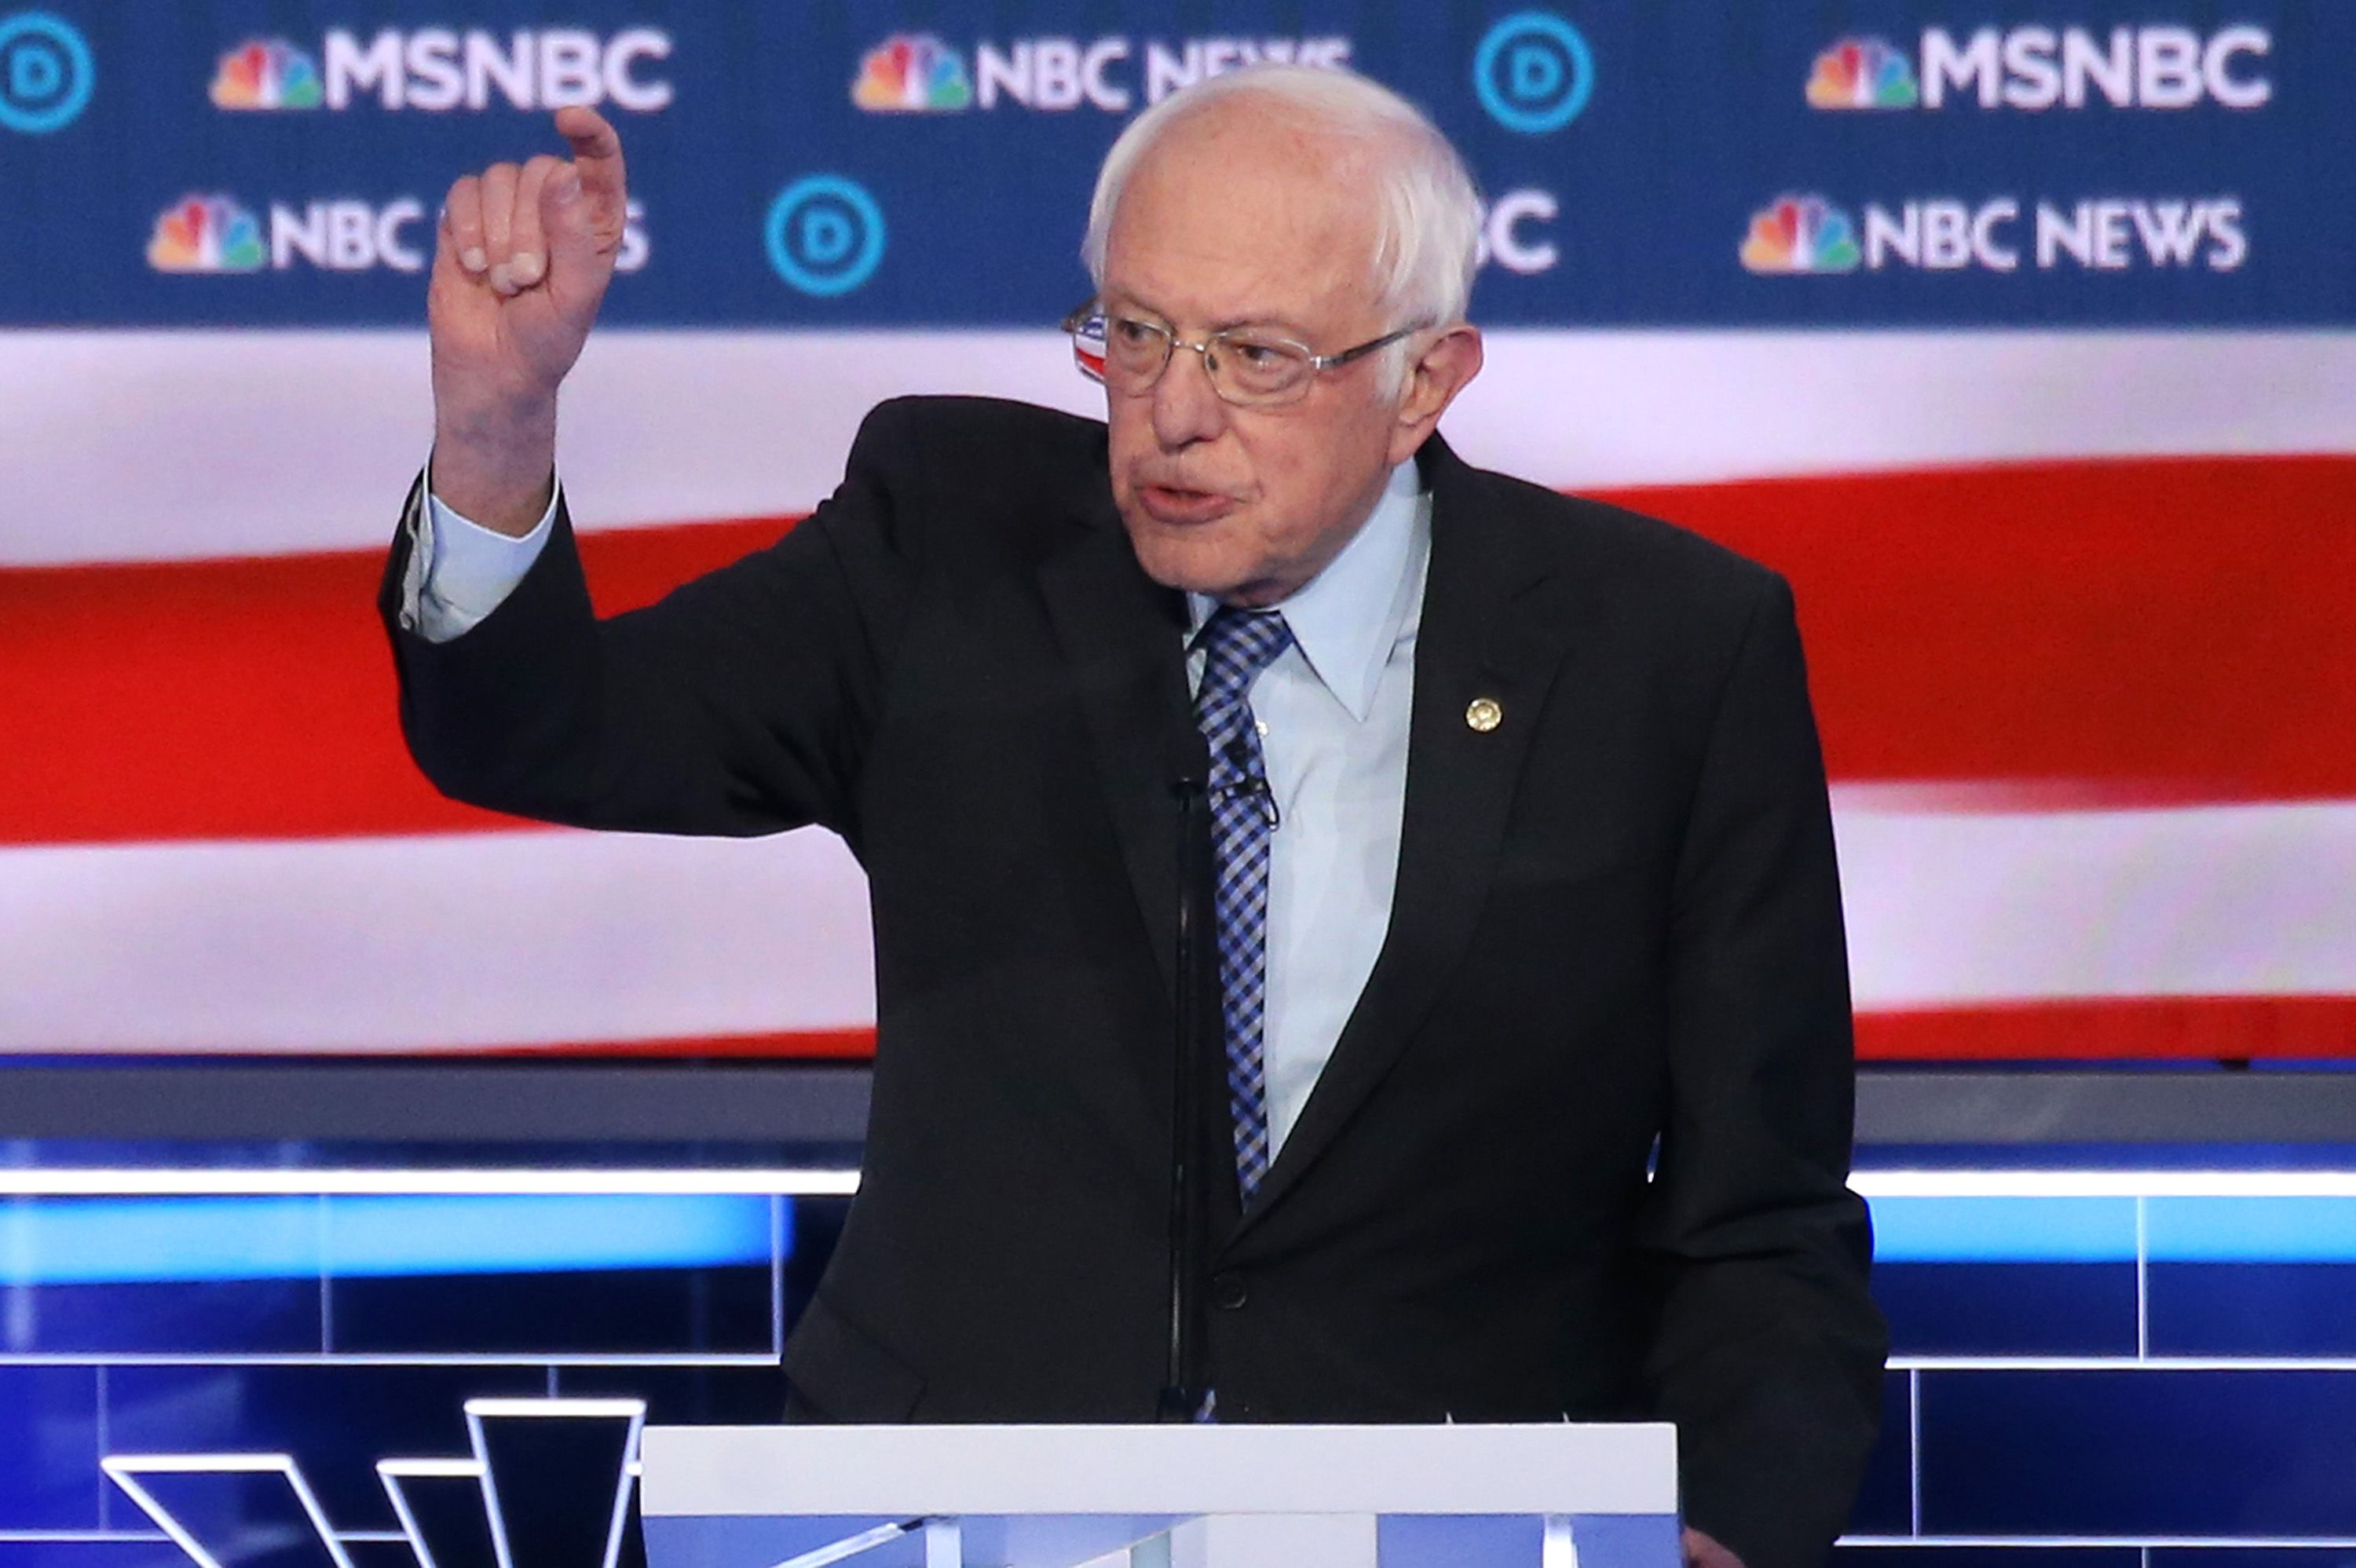 """Sanders defends socialism: """"We are living, in many ways, in a socialist society right now"""" - Axios"""